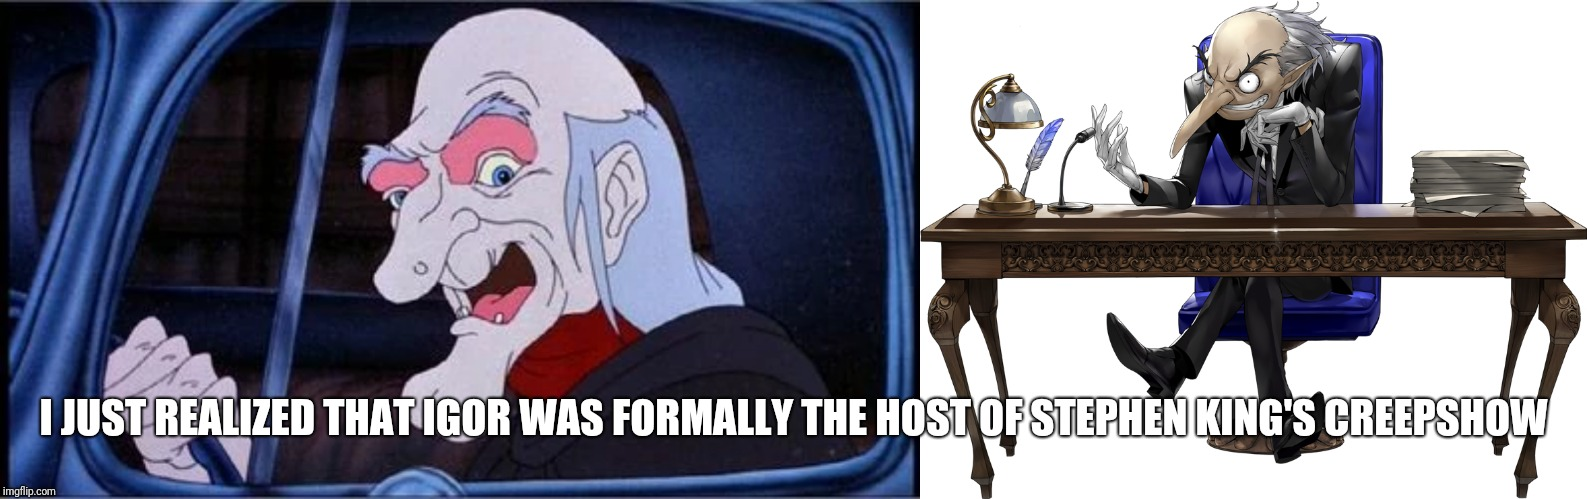 I JUST REALIZED THAT IGOR WAS FORMALLY THE HOST OF STEPHEN KING'S CREEPSHOW | image tagged in persona,stephen king,funny memes,horror,rpg | made w/ Imgflip meme maker